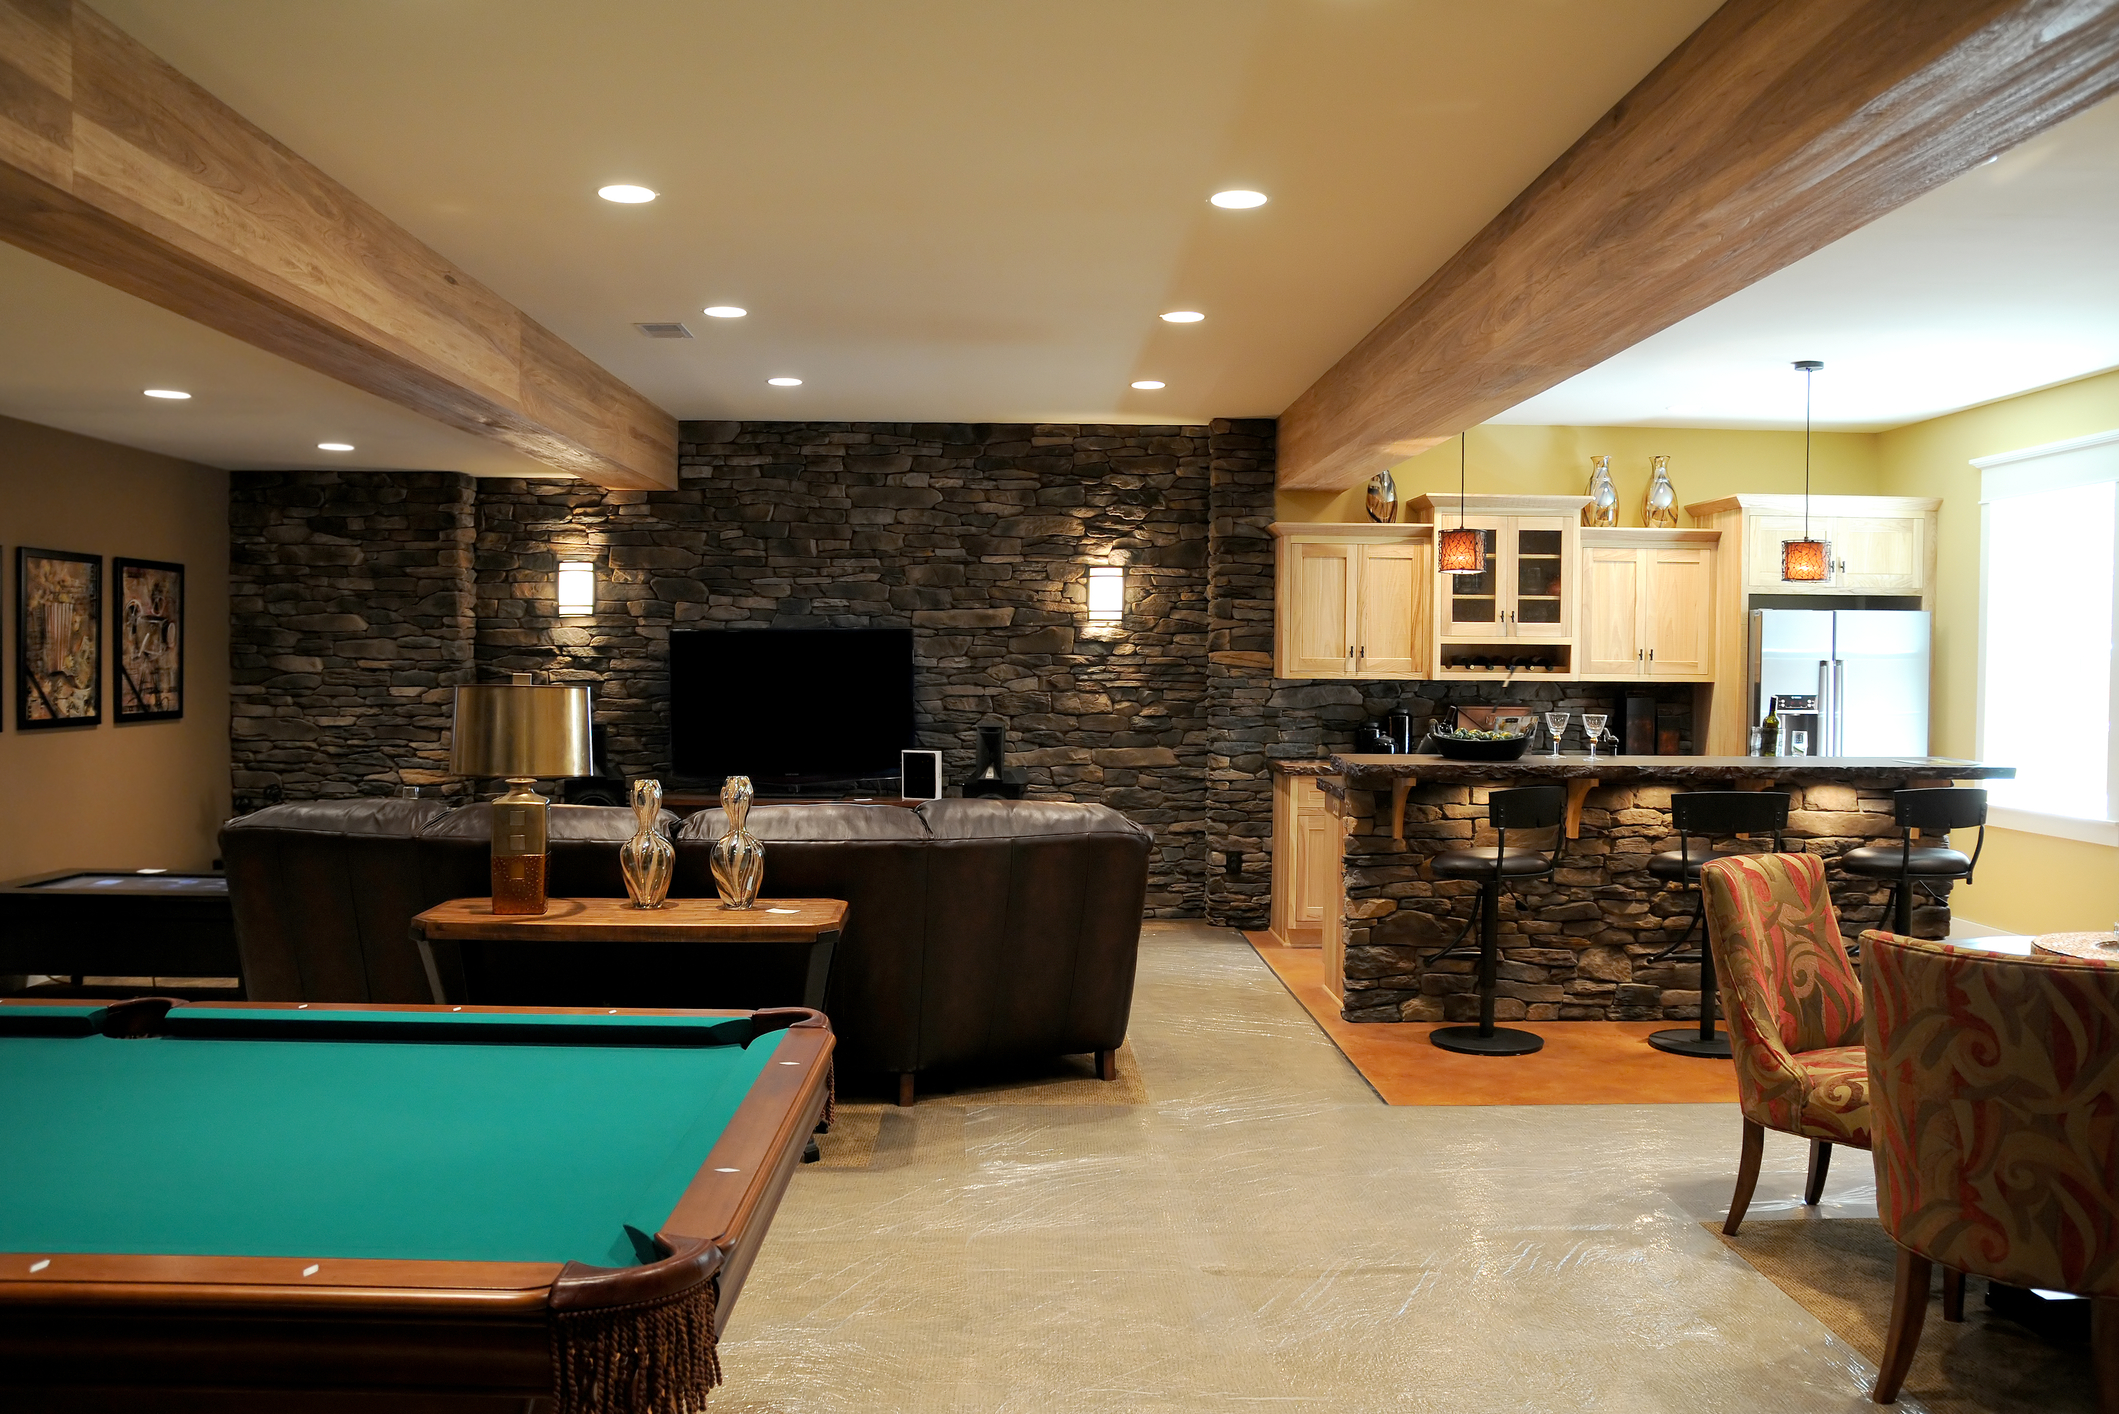 A cozy and beautifully decorated basement